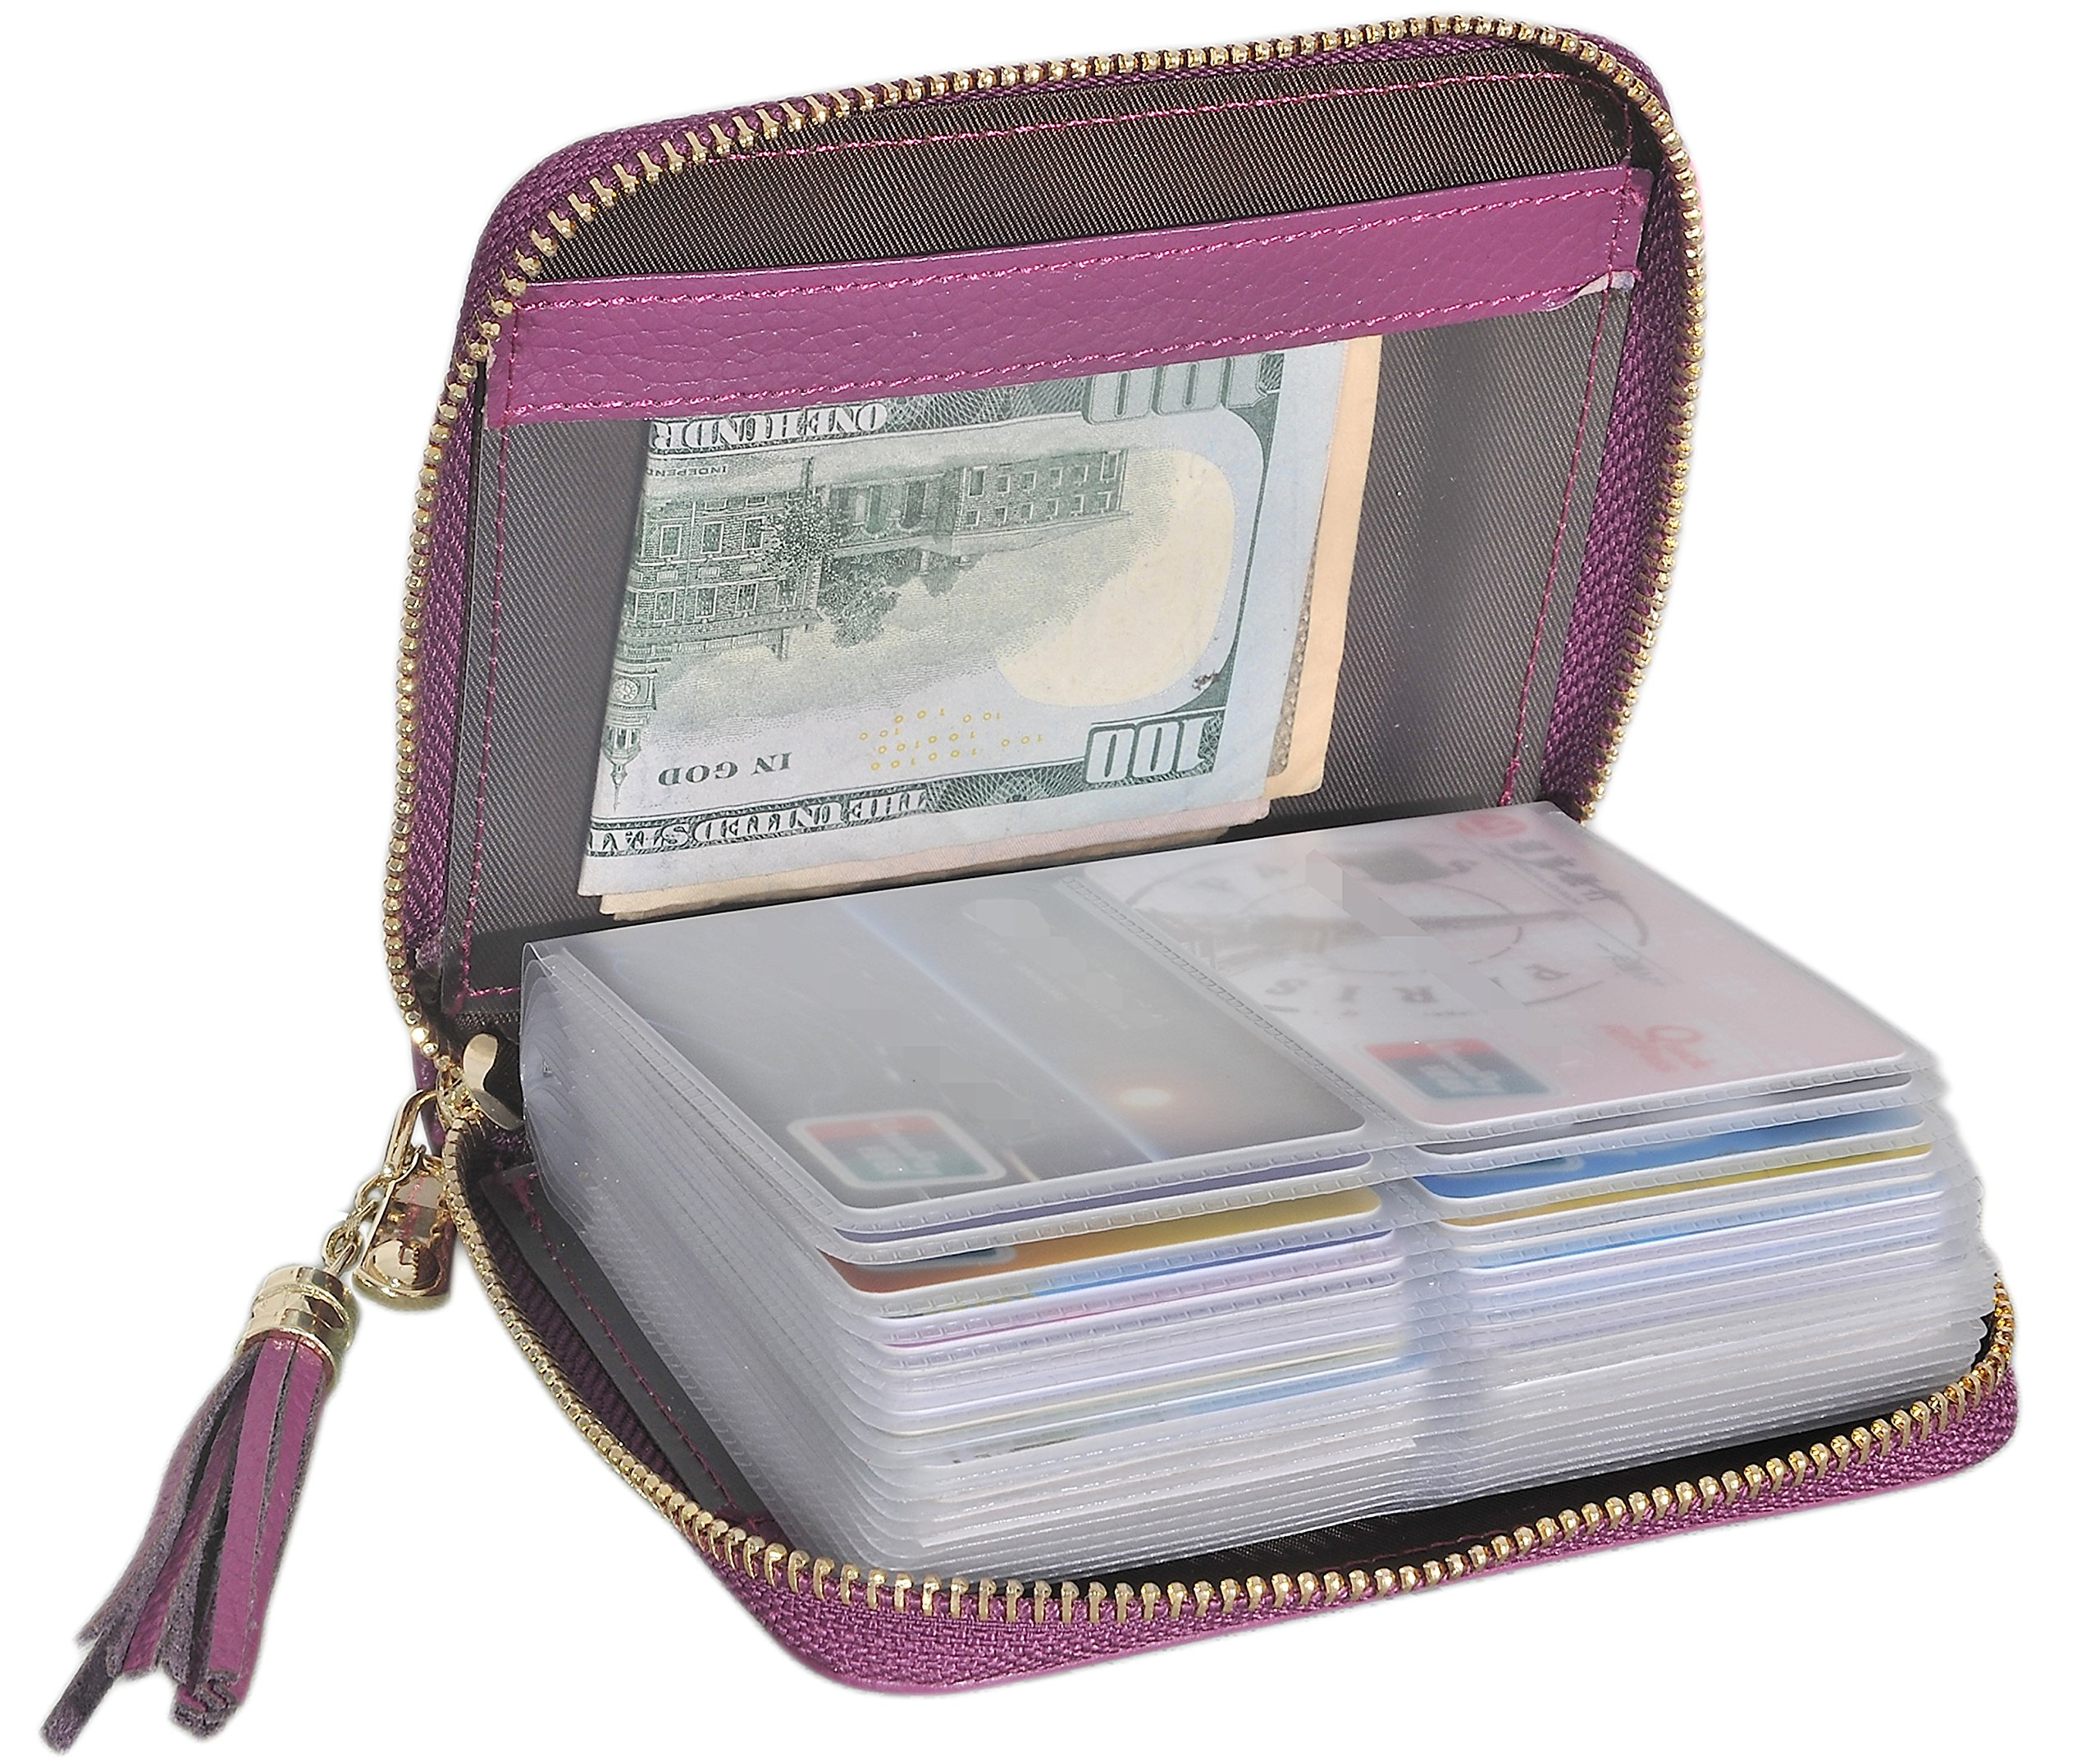 Easyoulife Womens Credit Card Holder Wallet Zip Leather Card Case RFID Blocking (Purple)